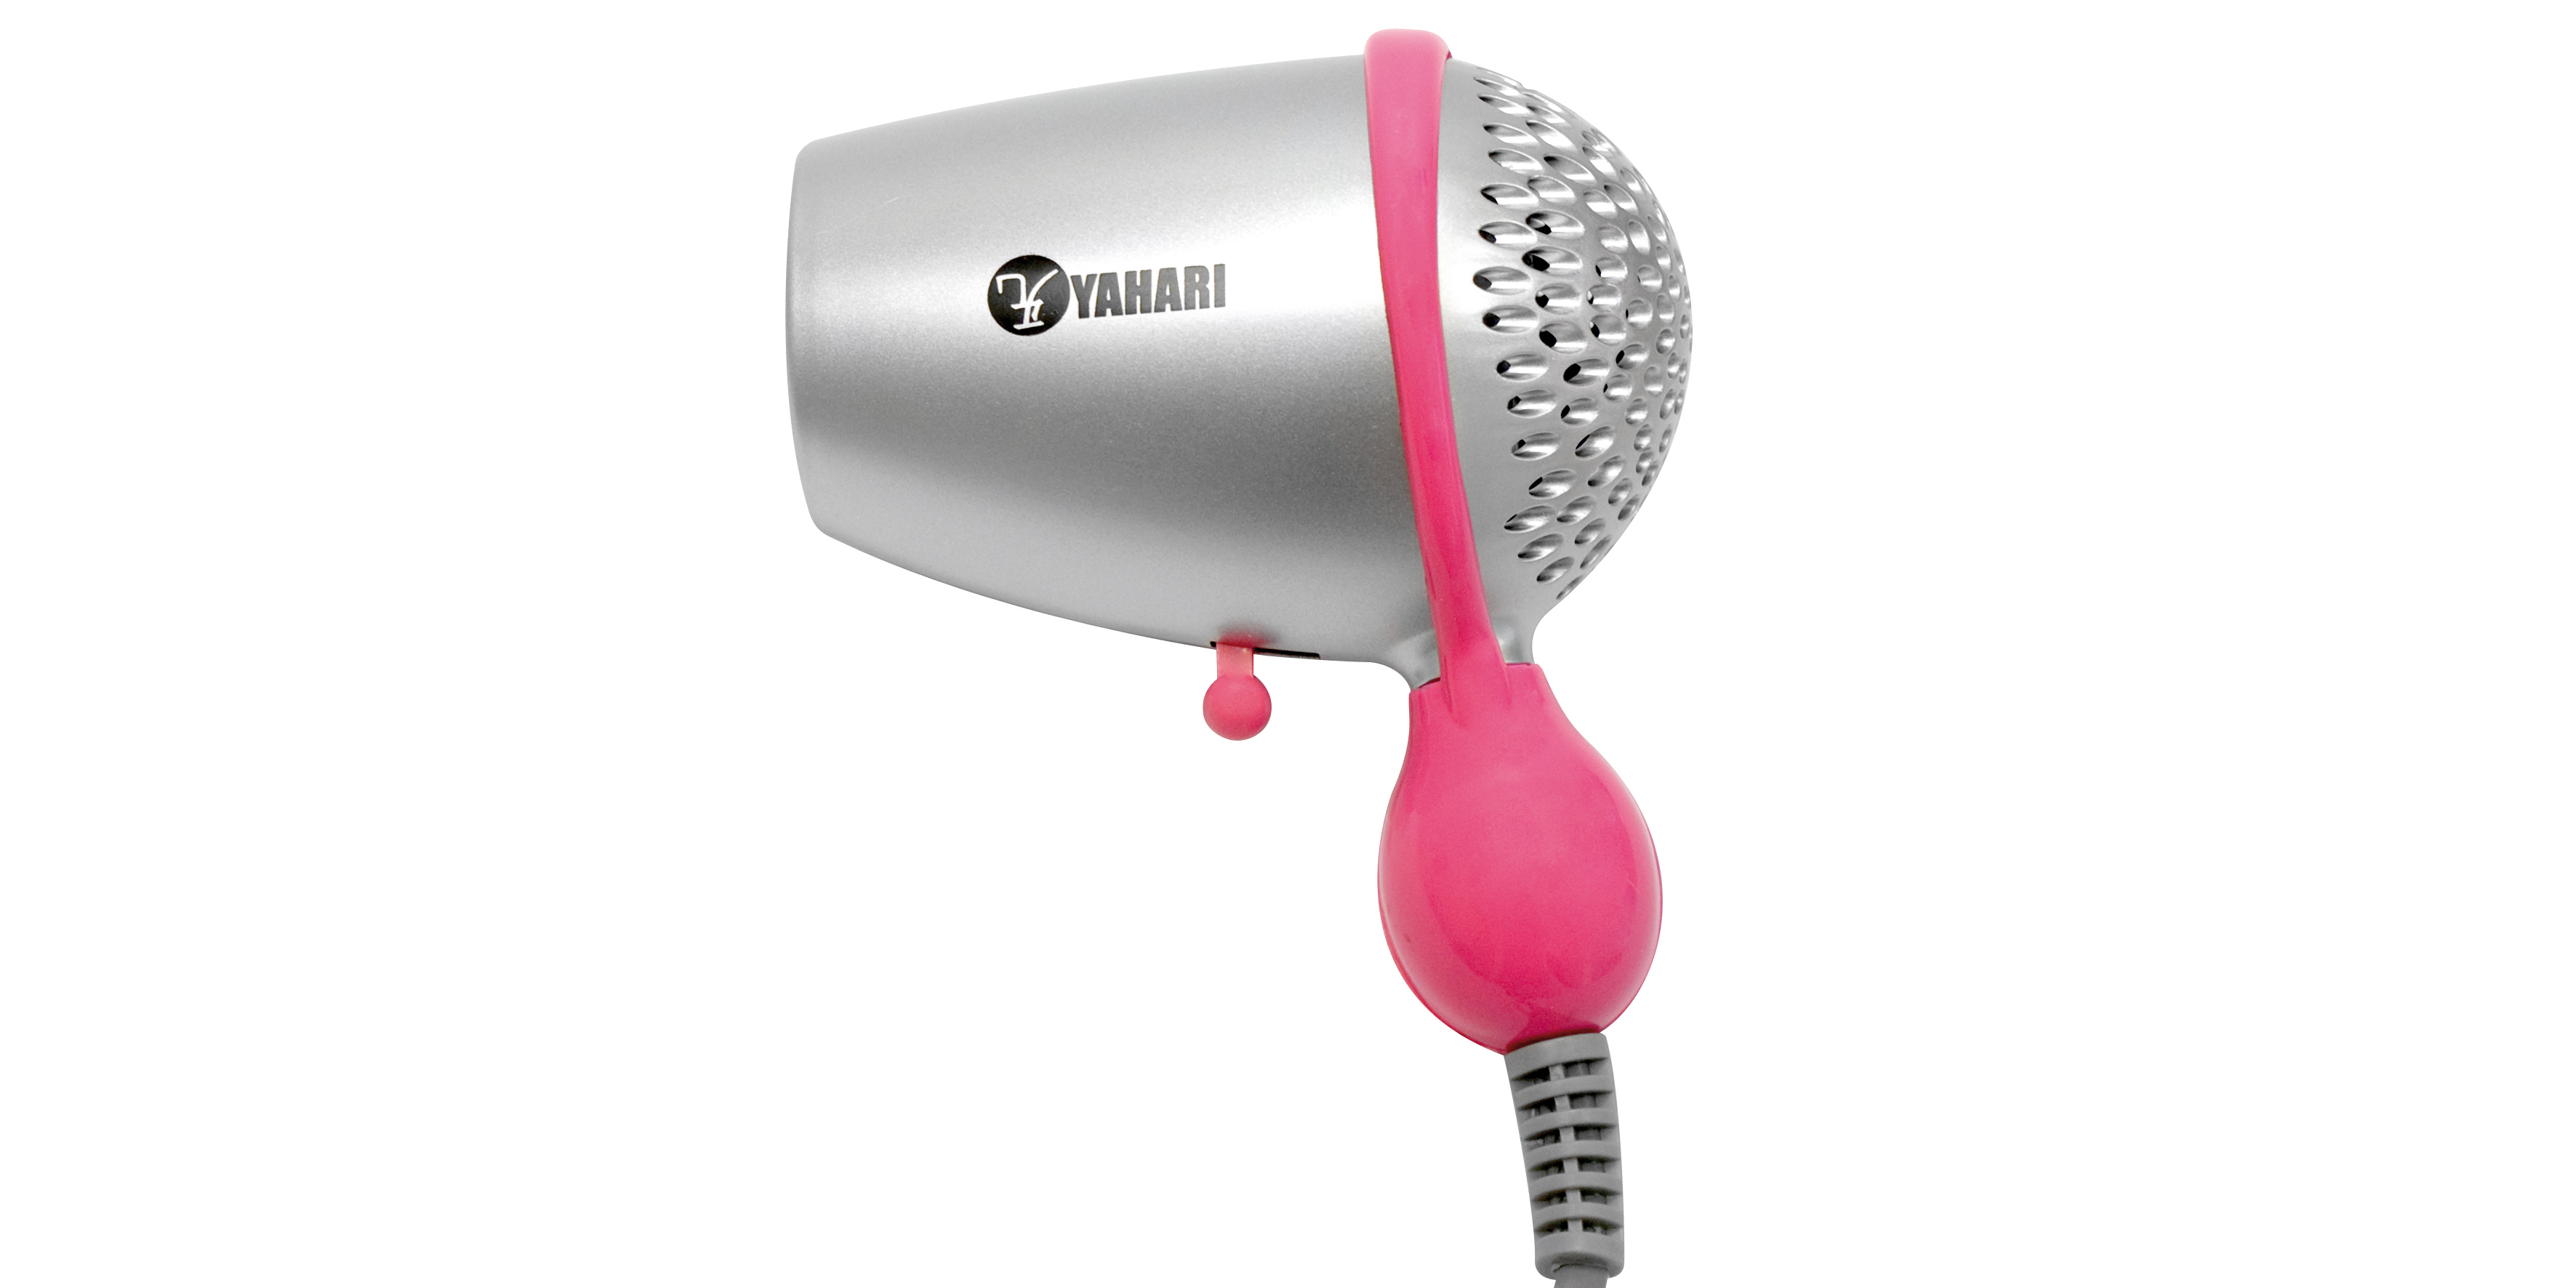 Cleo's Goliat Miniature 500w Travel Dryer is the latest travel accessory for women visiting Europe this summer